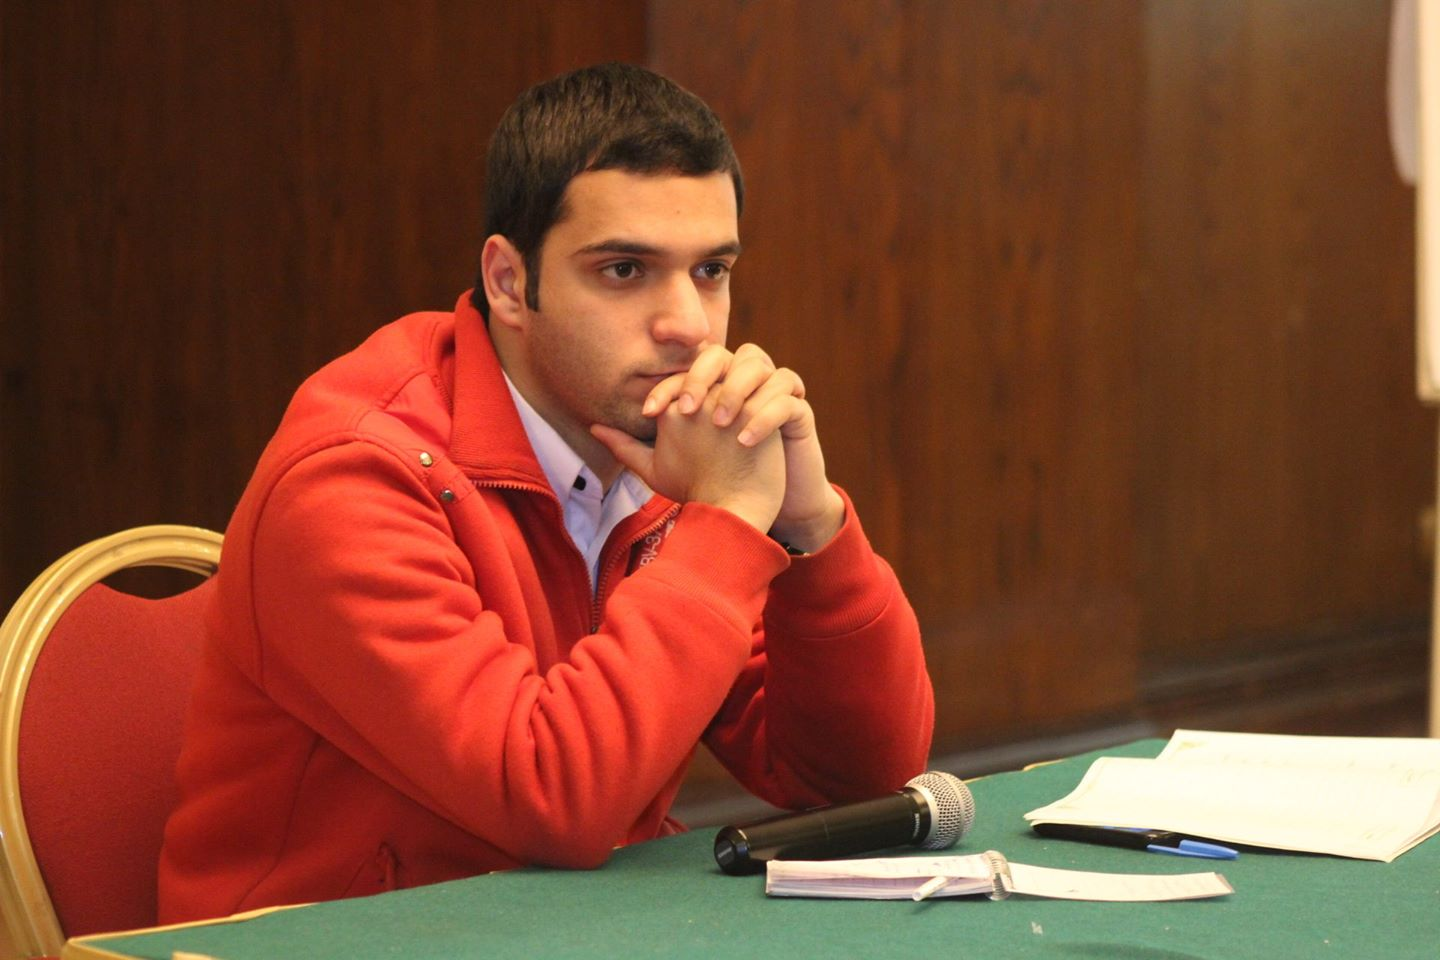 Egypt's Student Union President Mohamed Badran (Photo Courtesy of Mohamed Badran )